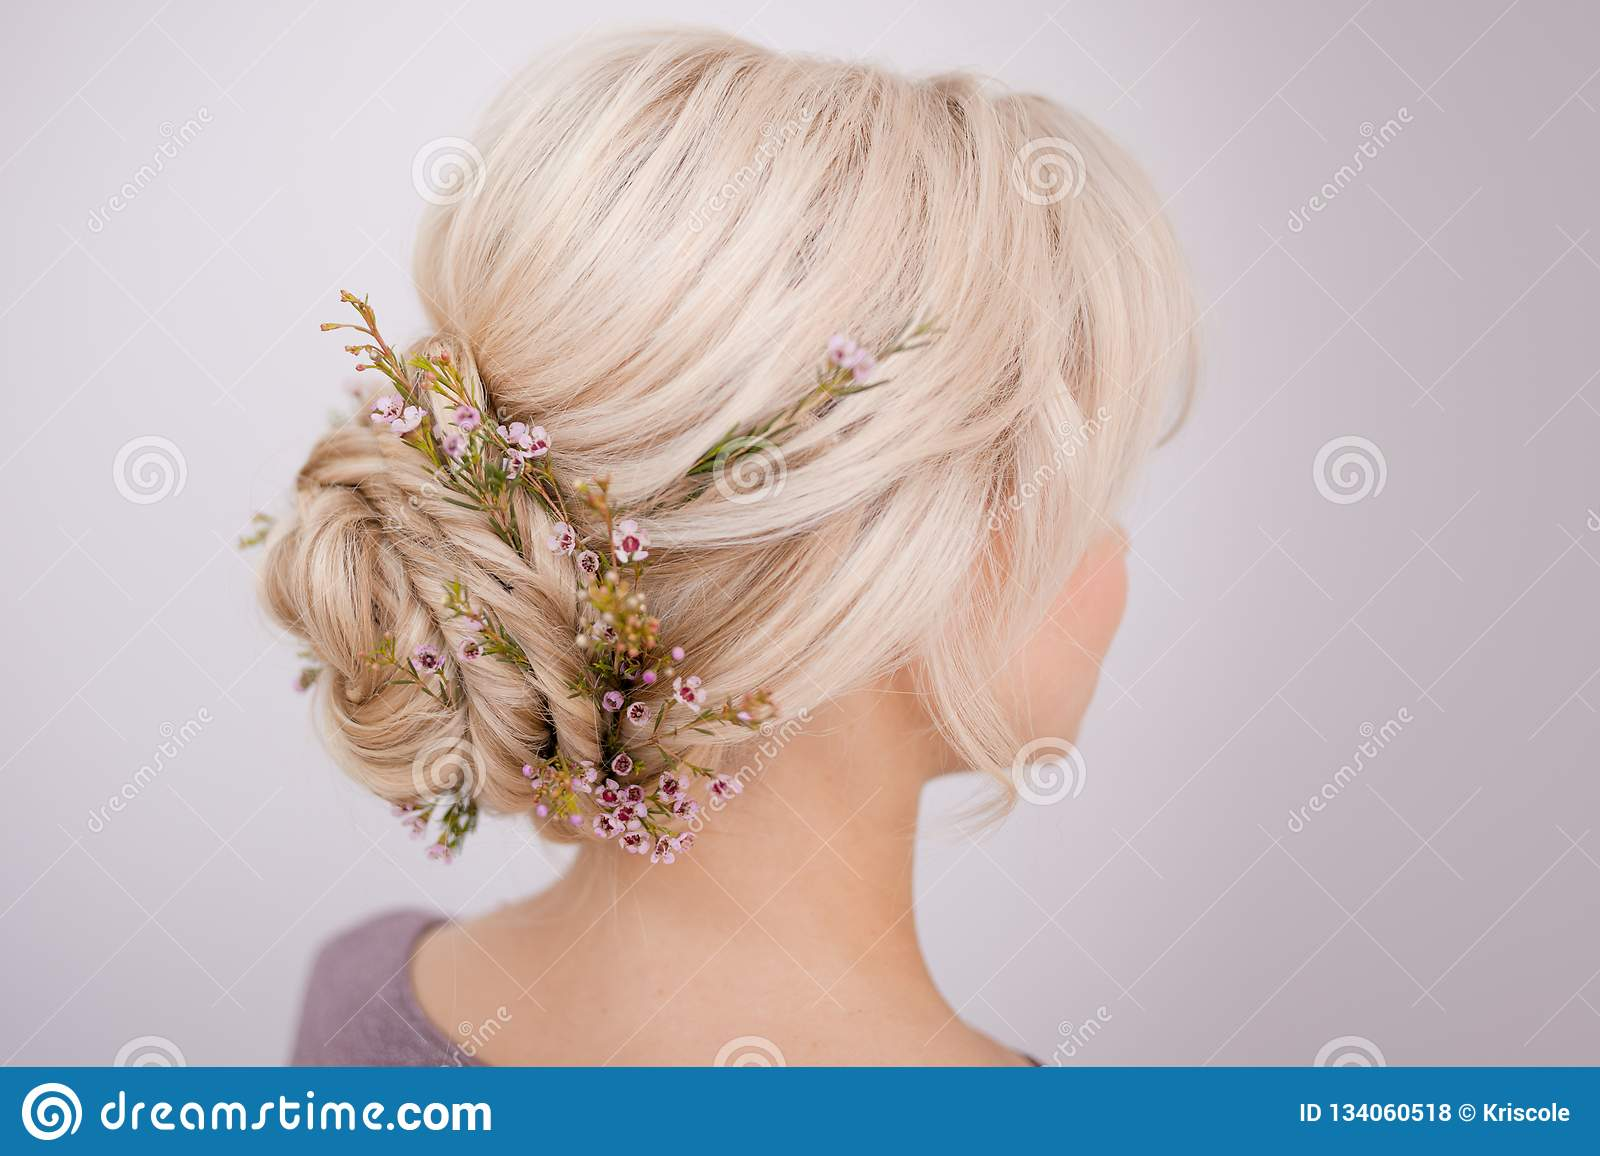 female head back view. make an elegant hairstyle with petals